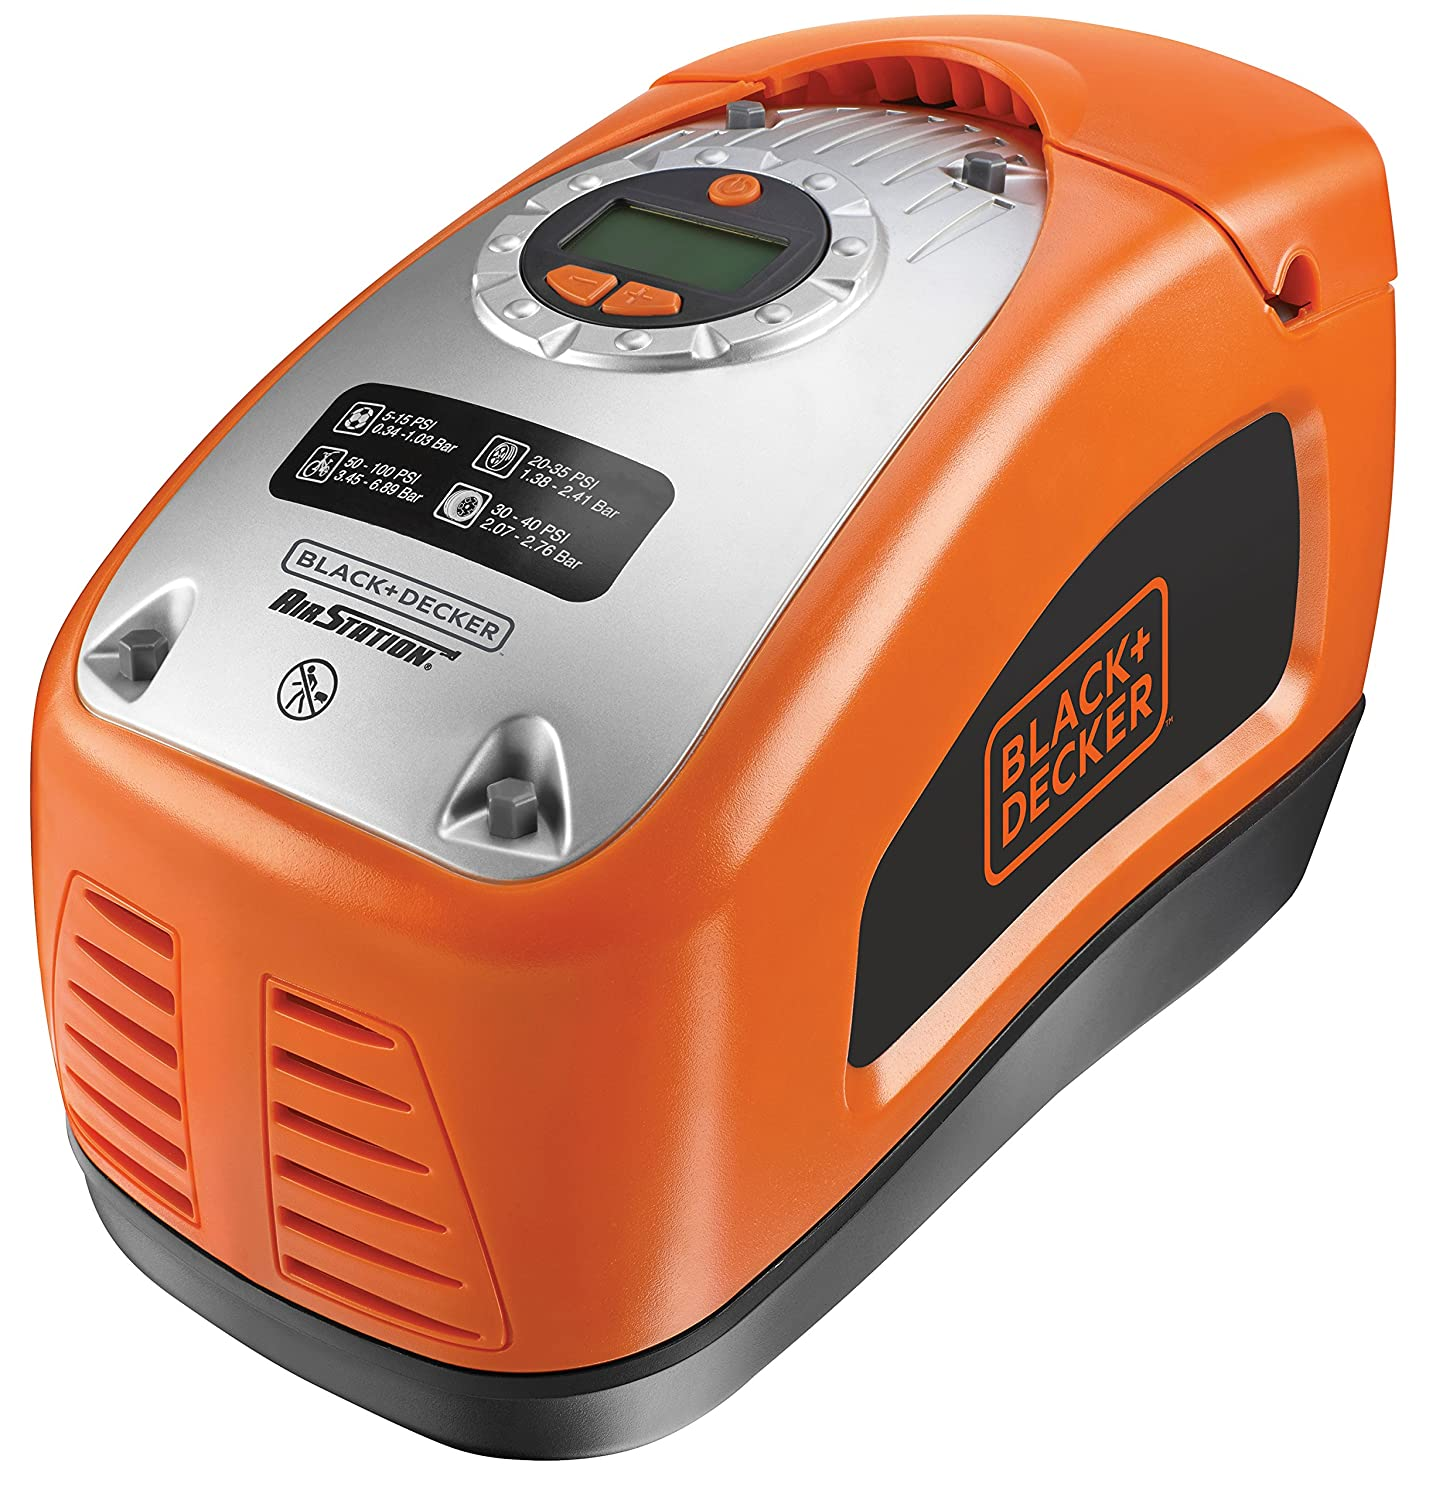 Black&Decker ASI 300 Kompressor 11 bar